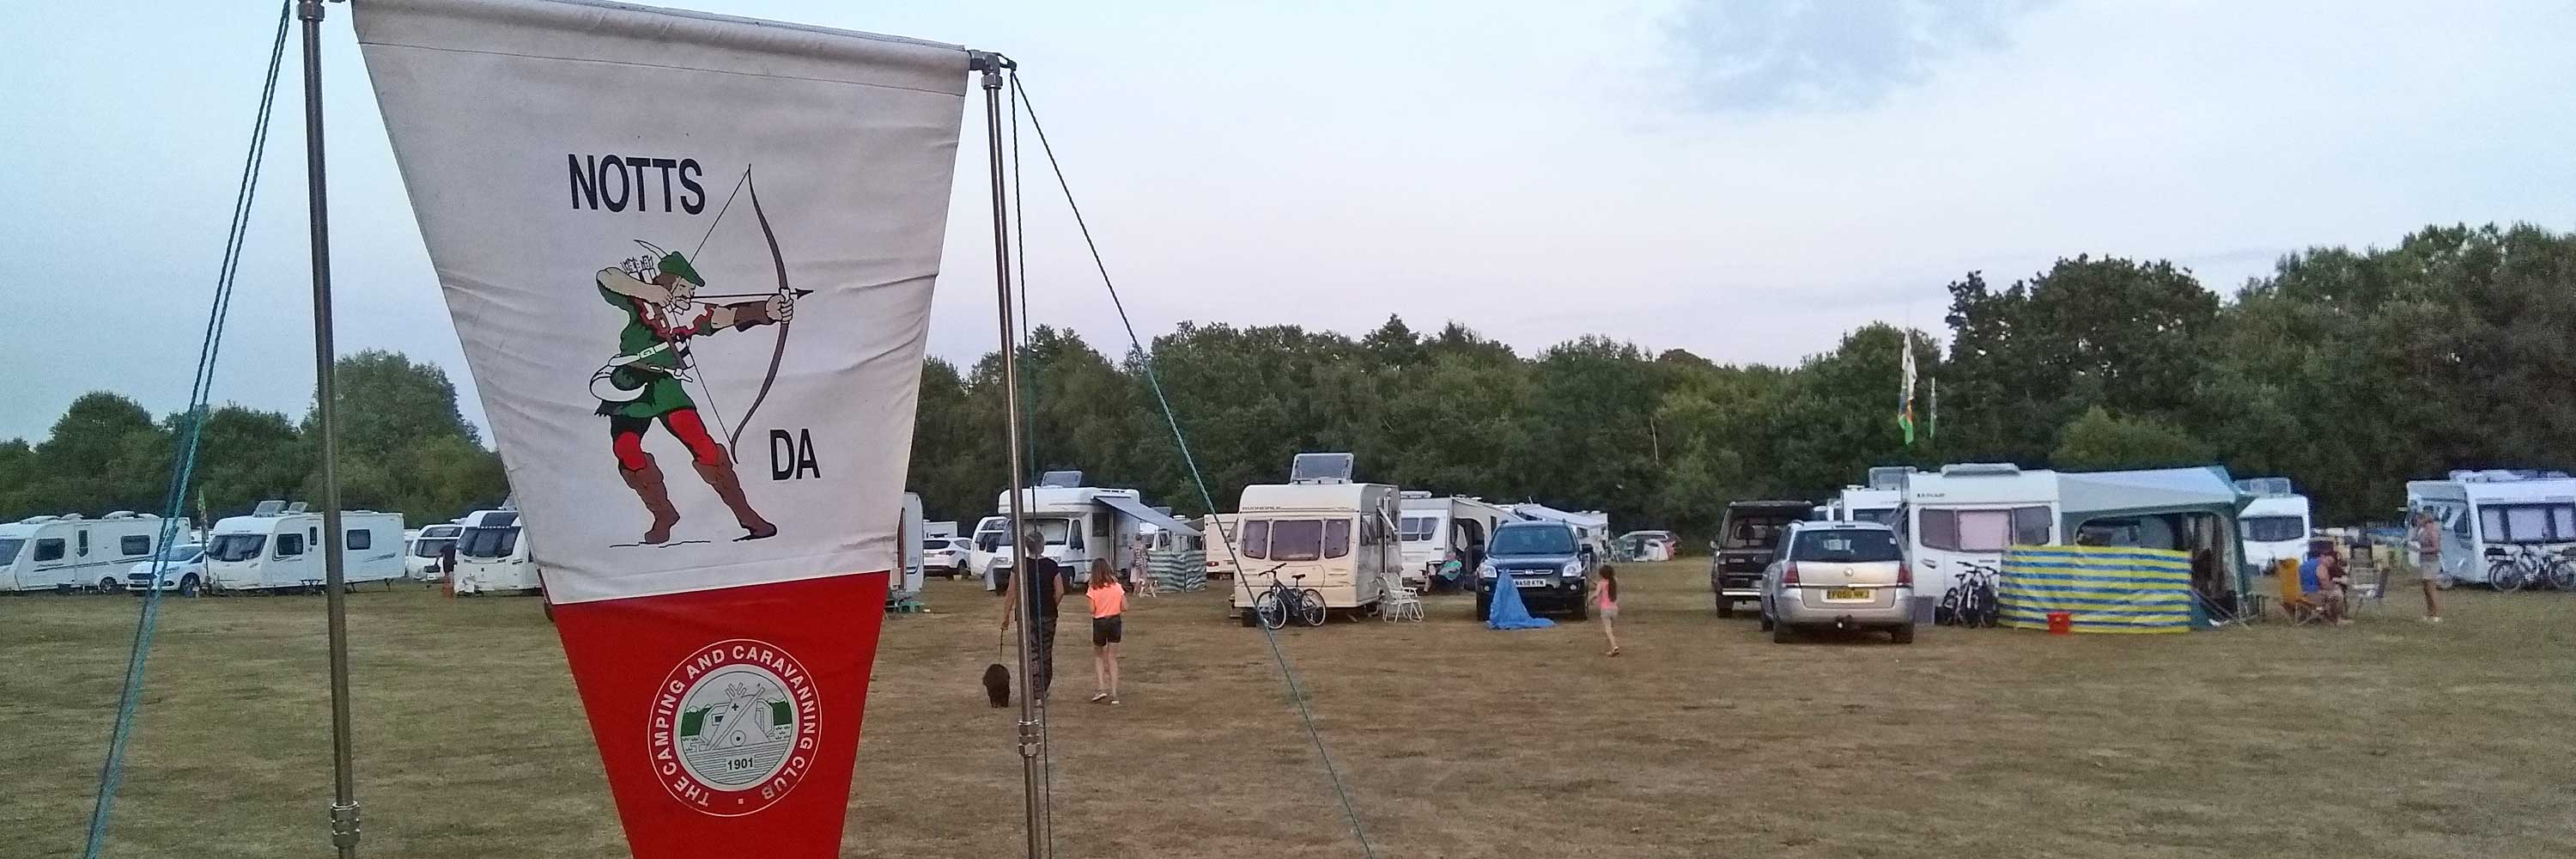 Notts DA caravan and camping weekends in Nottinghamshire